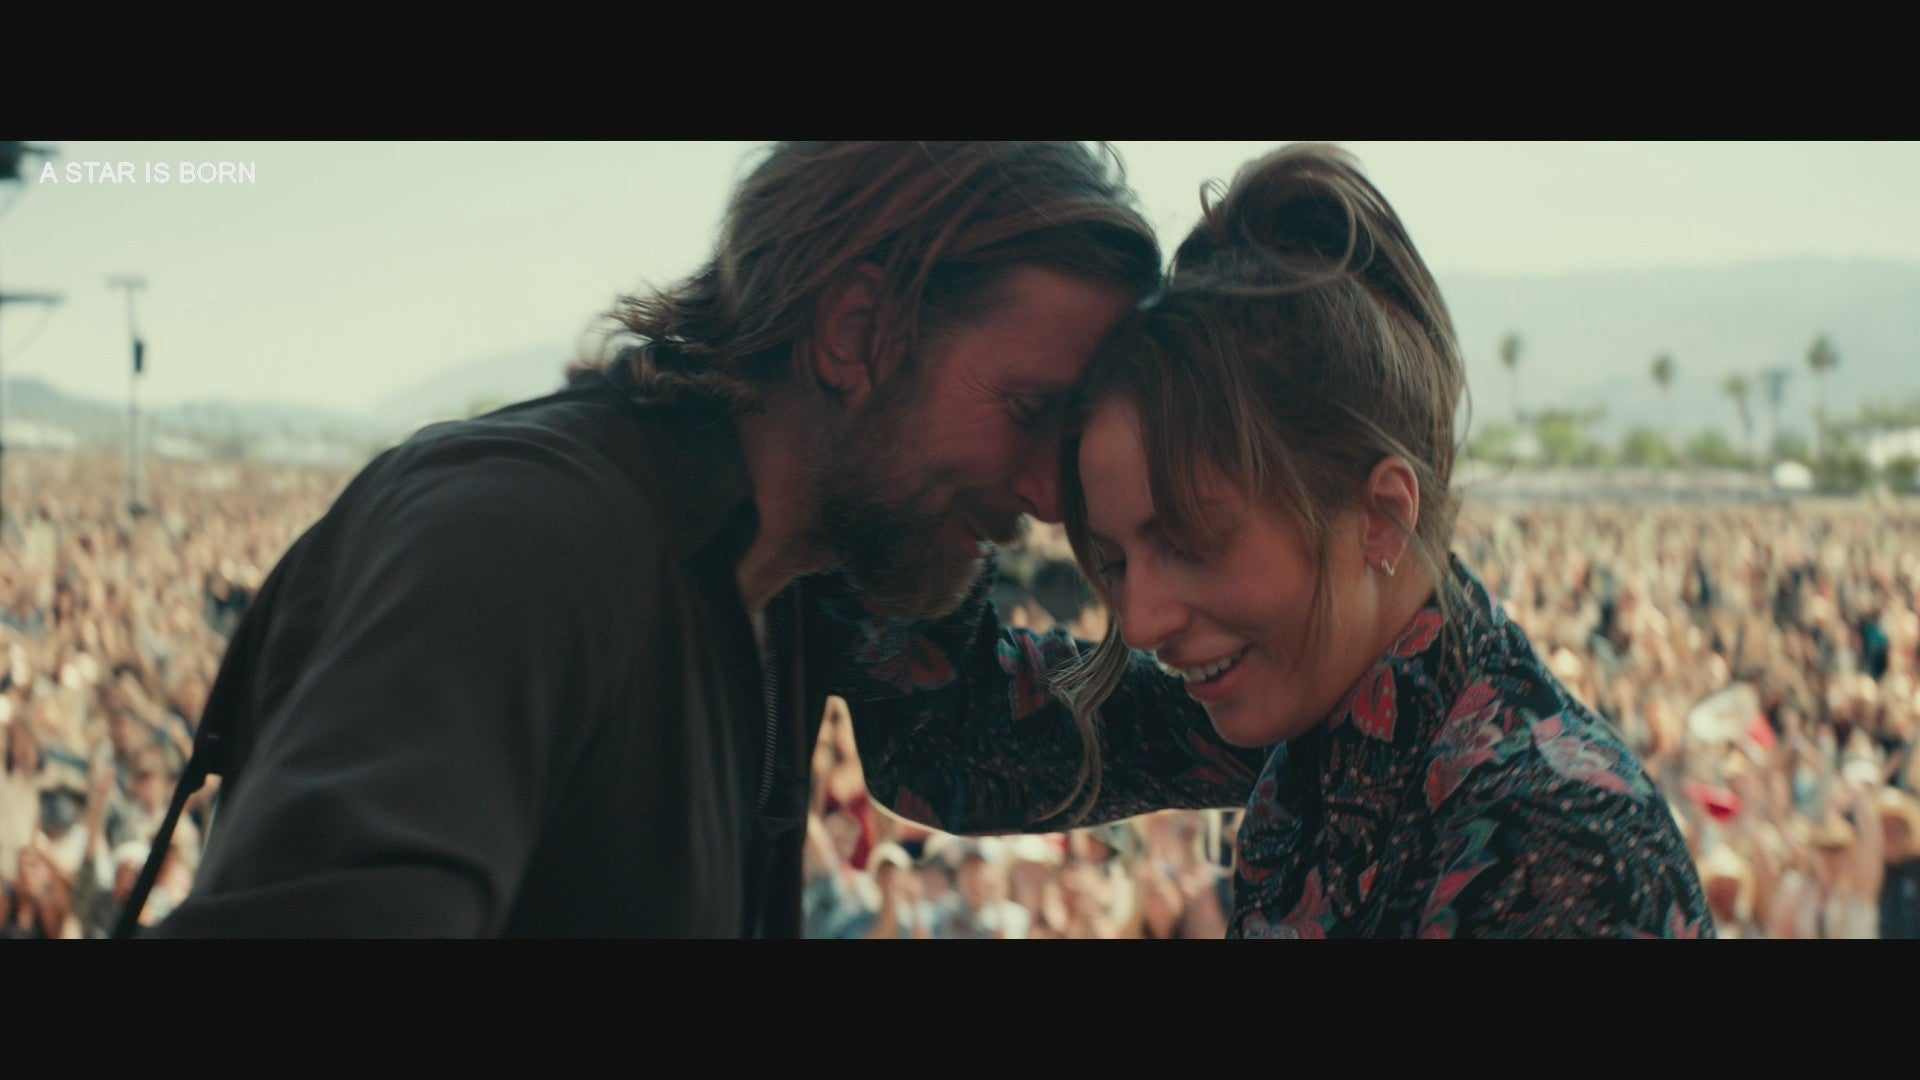 A Star Is Born Soundtrack How It Achieved Such Massive Success